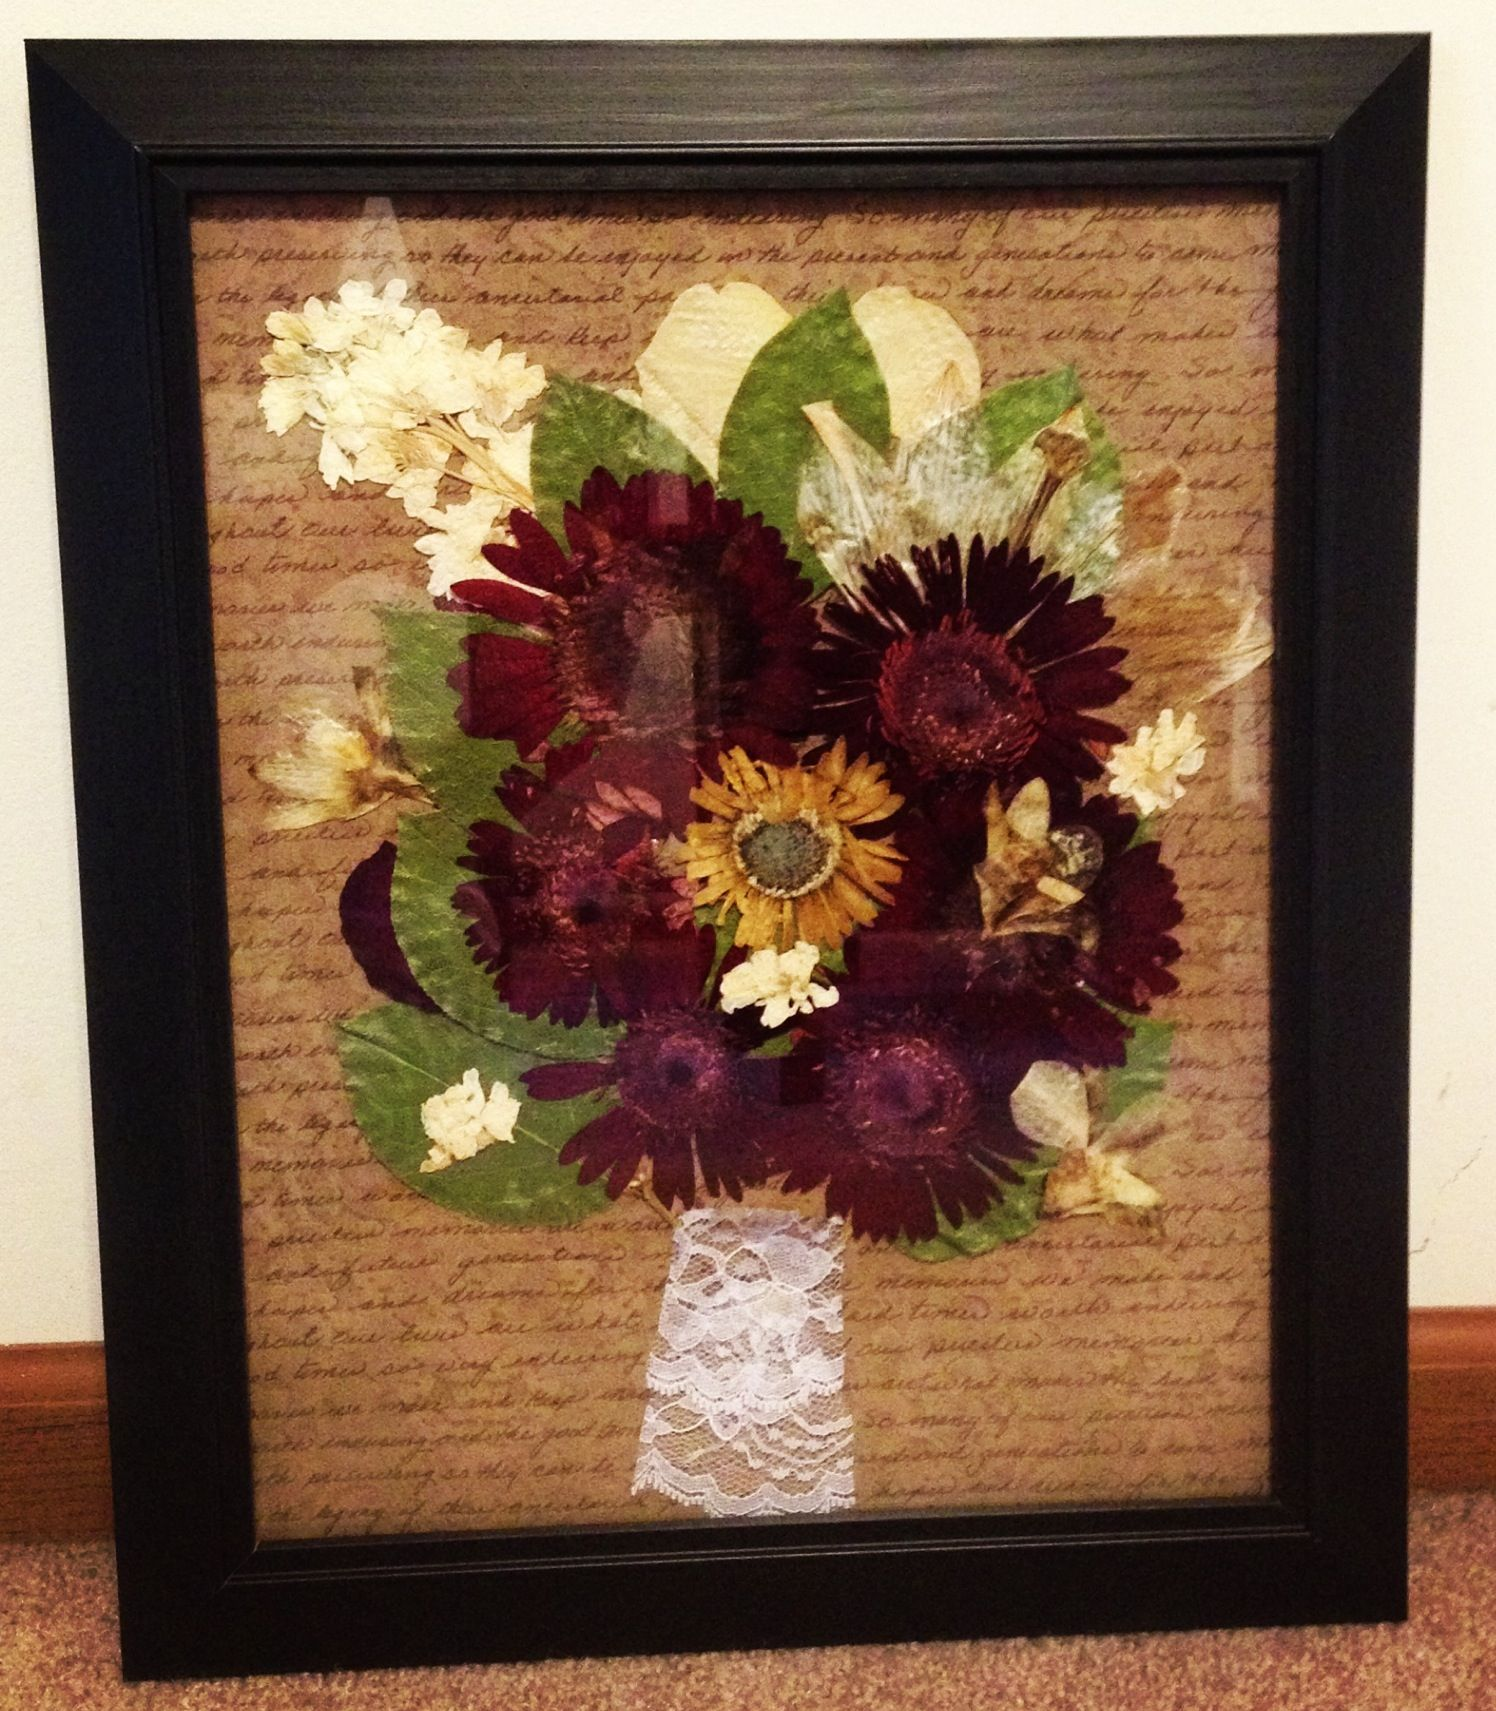 My Wedding Bouquet After The Flowers Dried Used 11x14 Picture Frame Scrapbook Paper And Mod Podge To Attach The Flowers